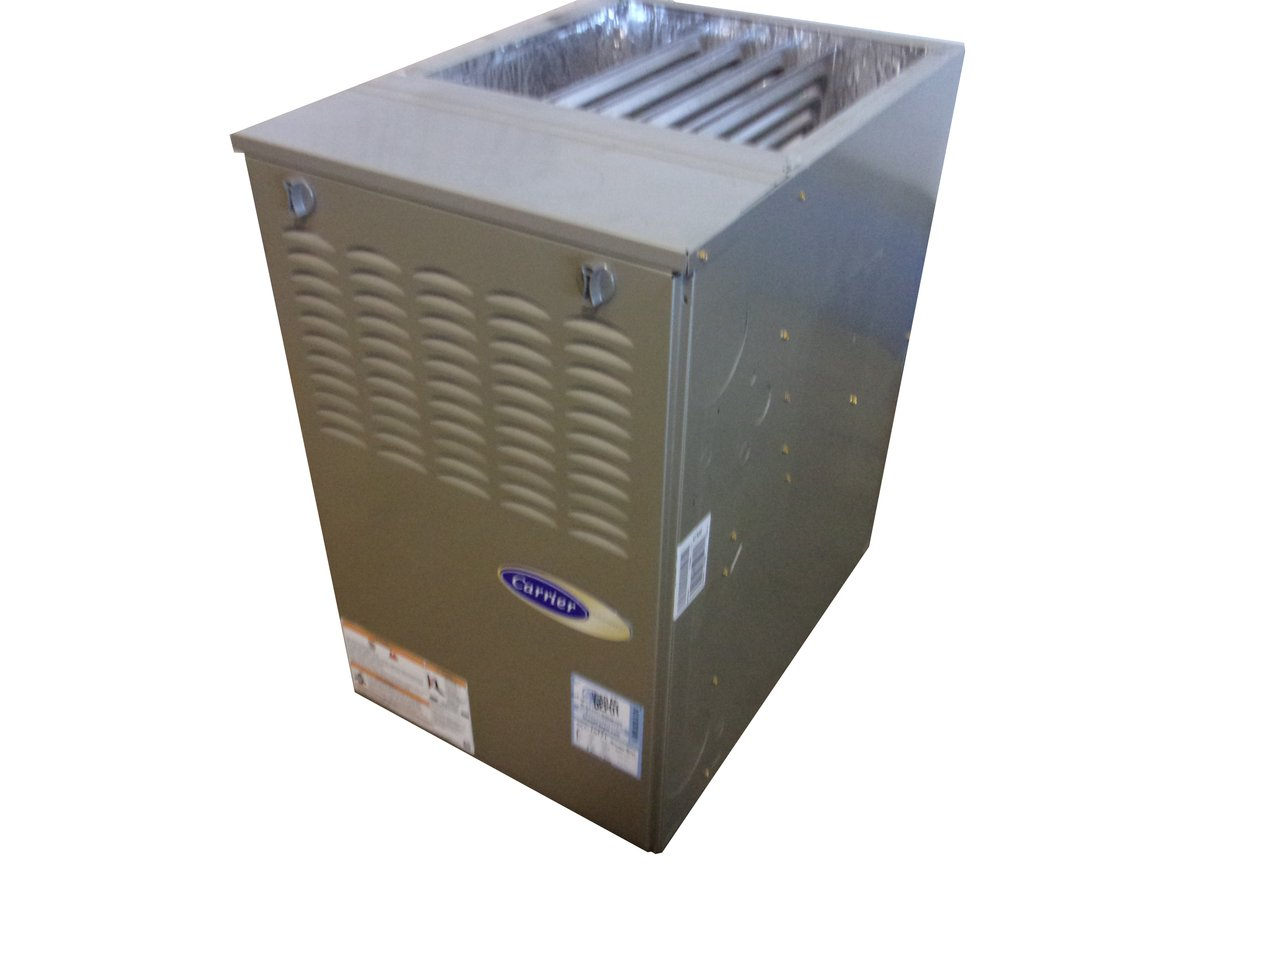 CARRIER ''Scratch & Dent'' Central Air Conditioner Furnace 58CTW090-1-16 ACC-10171